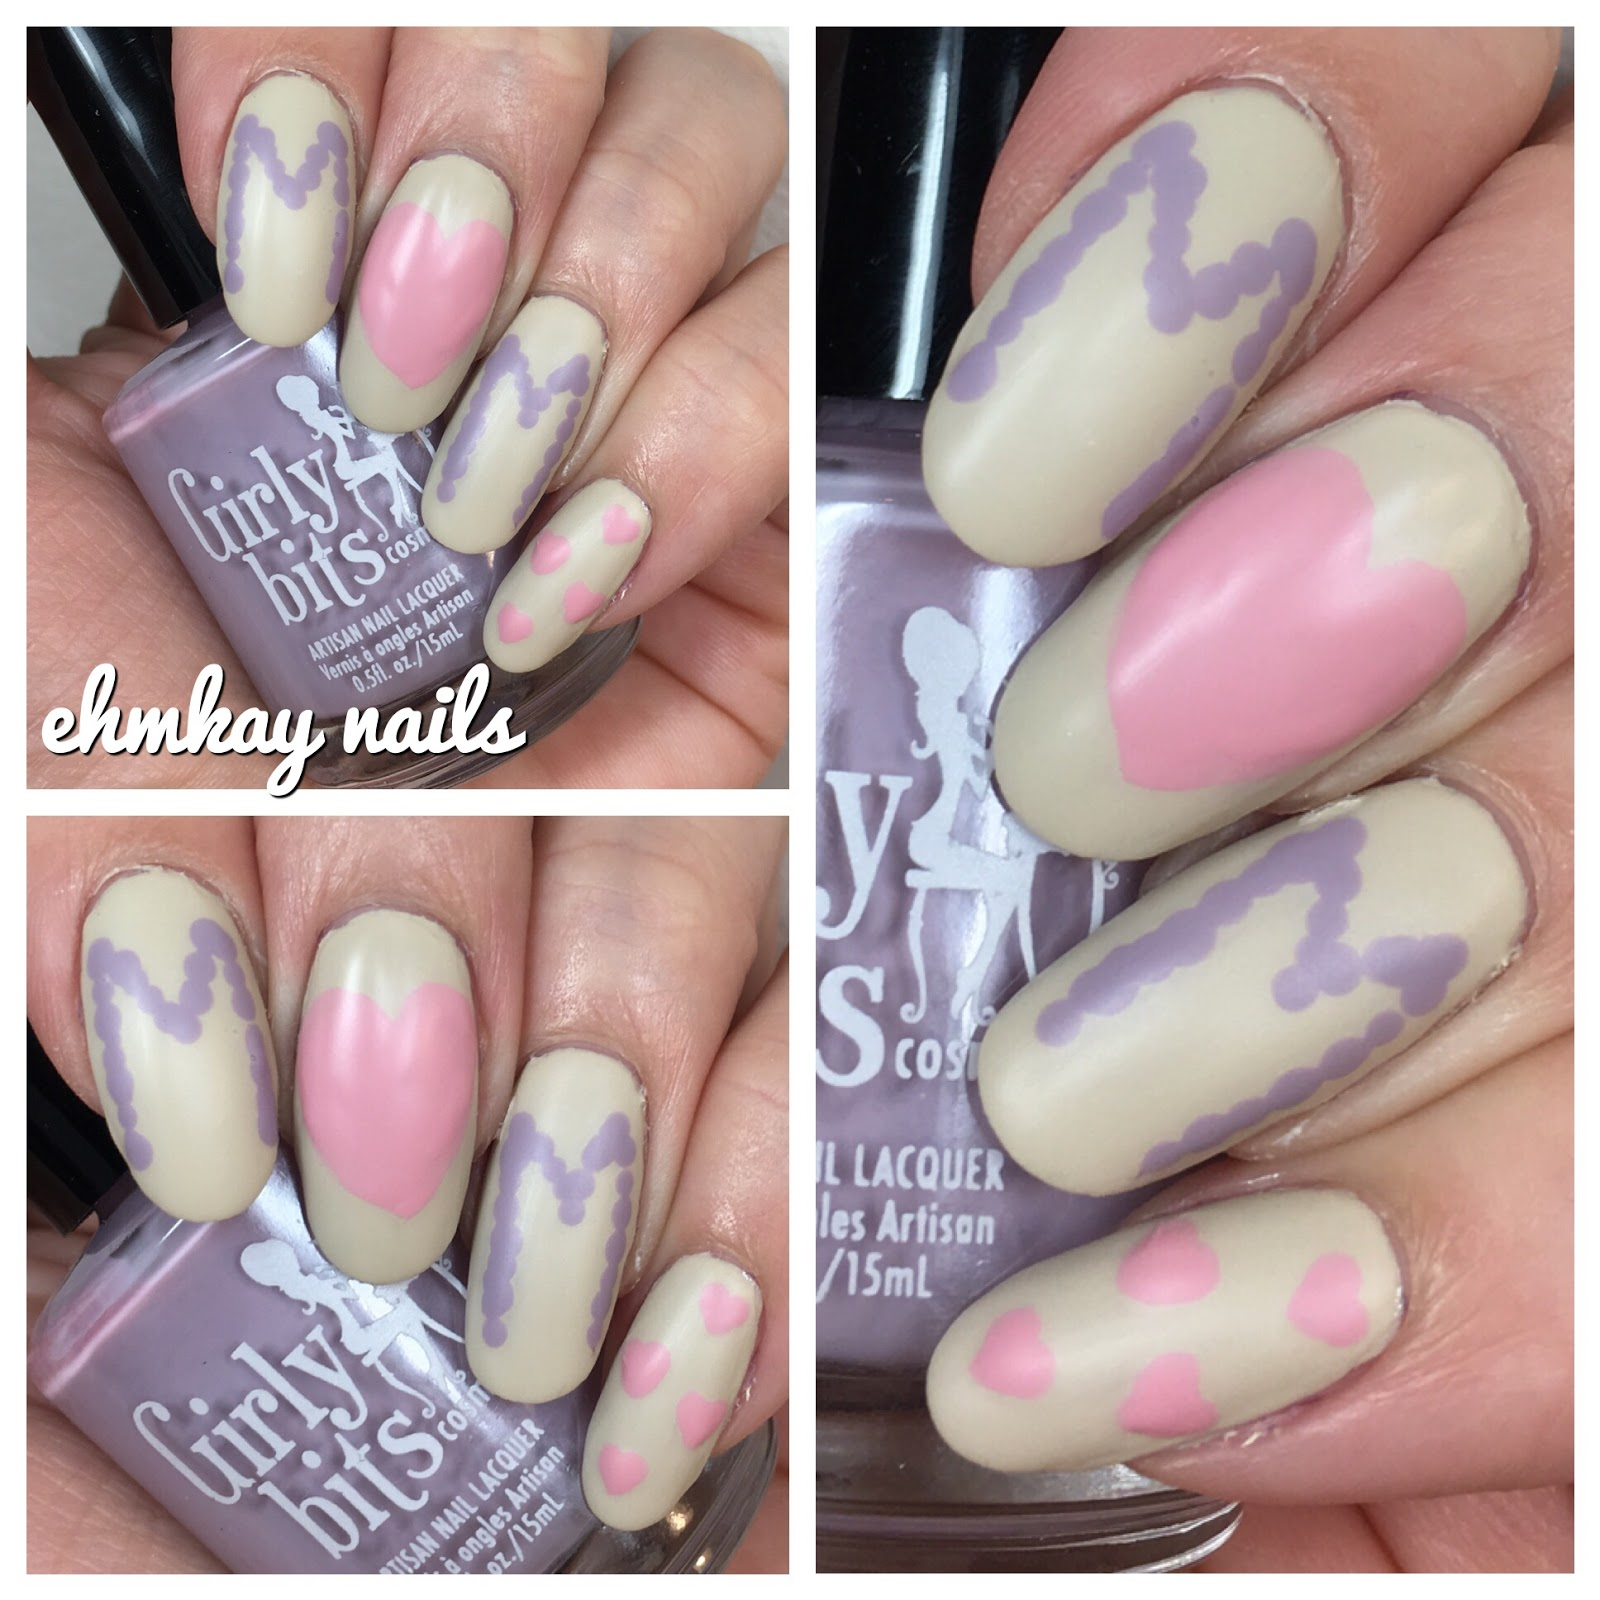 Ehmkay nails mothers day nail art with girly bits warrior mothers day nail art with girly bits warrior goddess collection prinsesfo Gallery